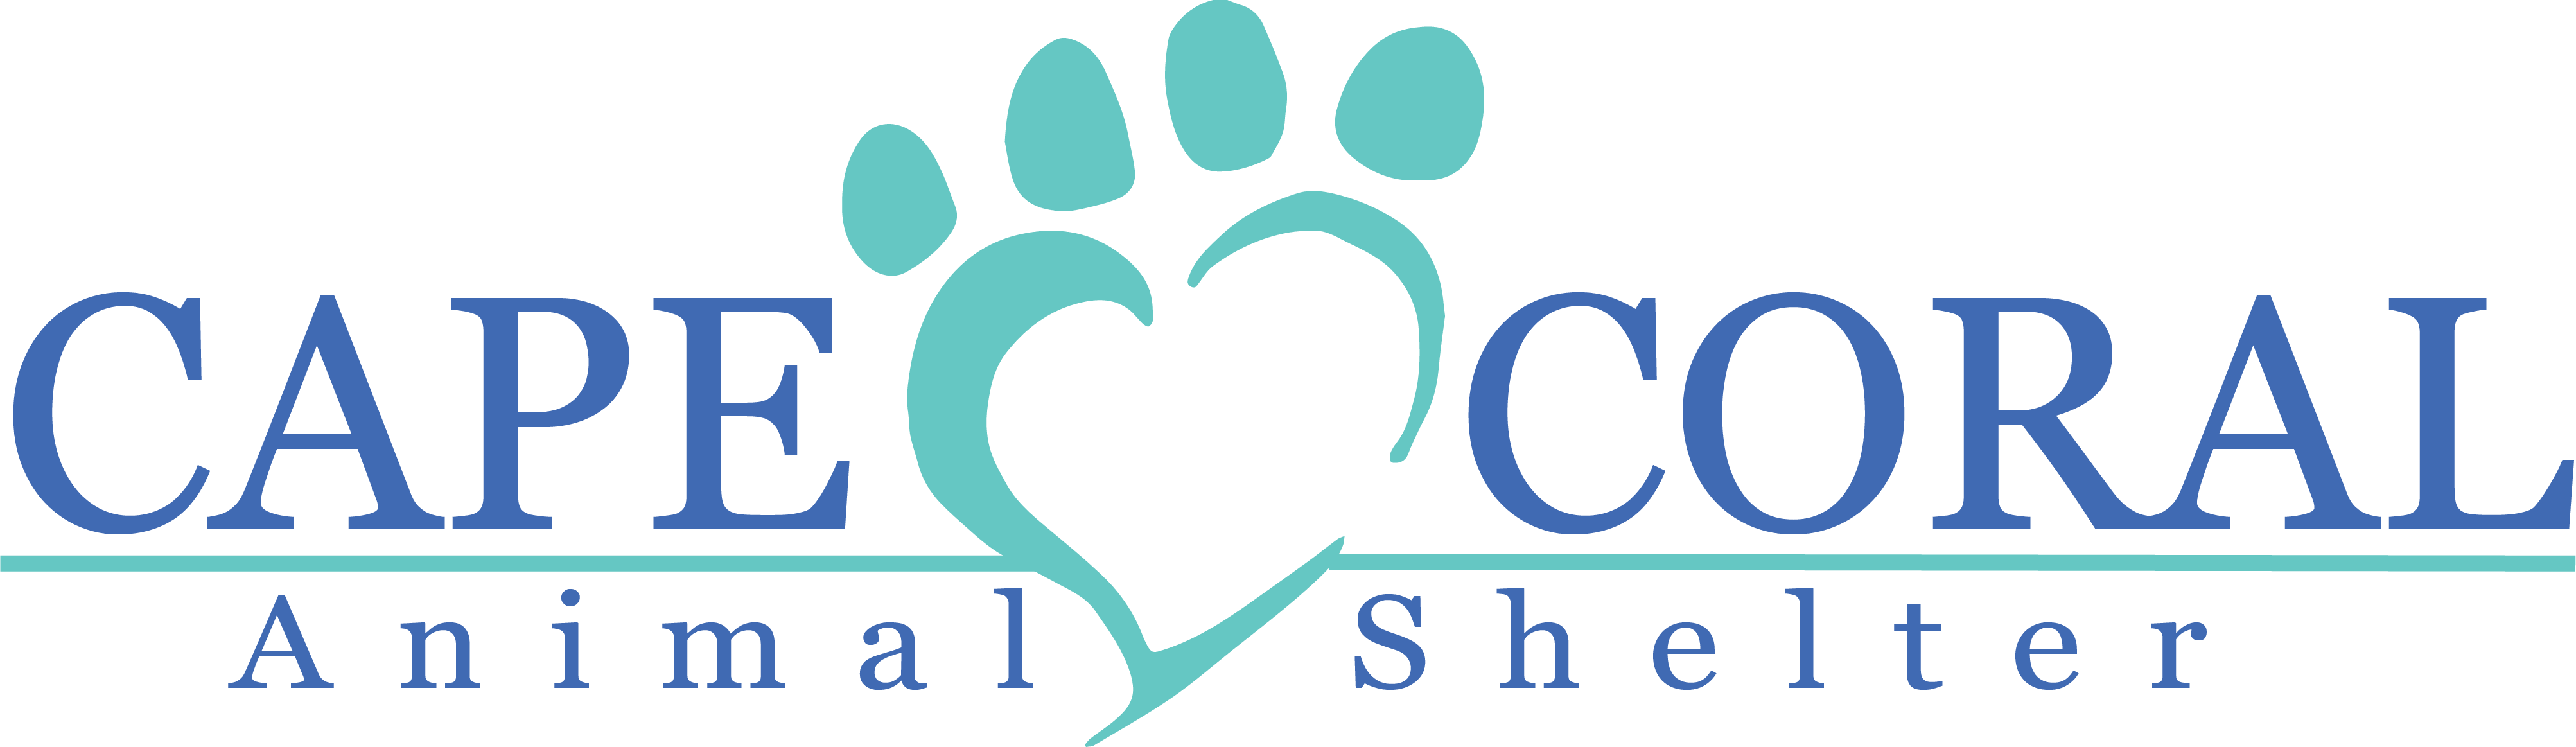 Cape Coral Animal Shelter Partnership